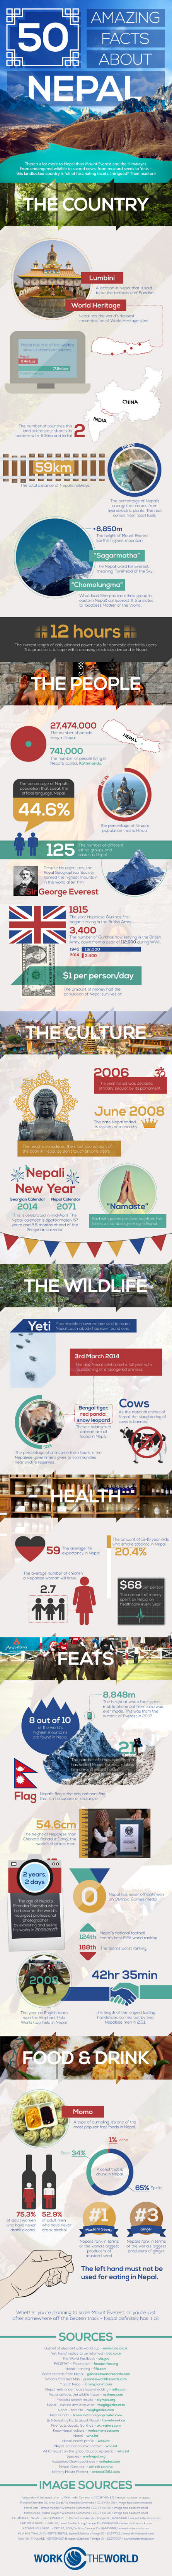 50 Amazing Facts About Nepal #Infographic